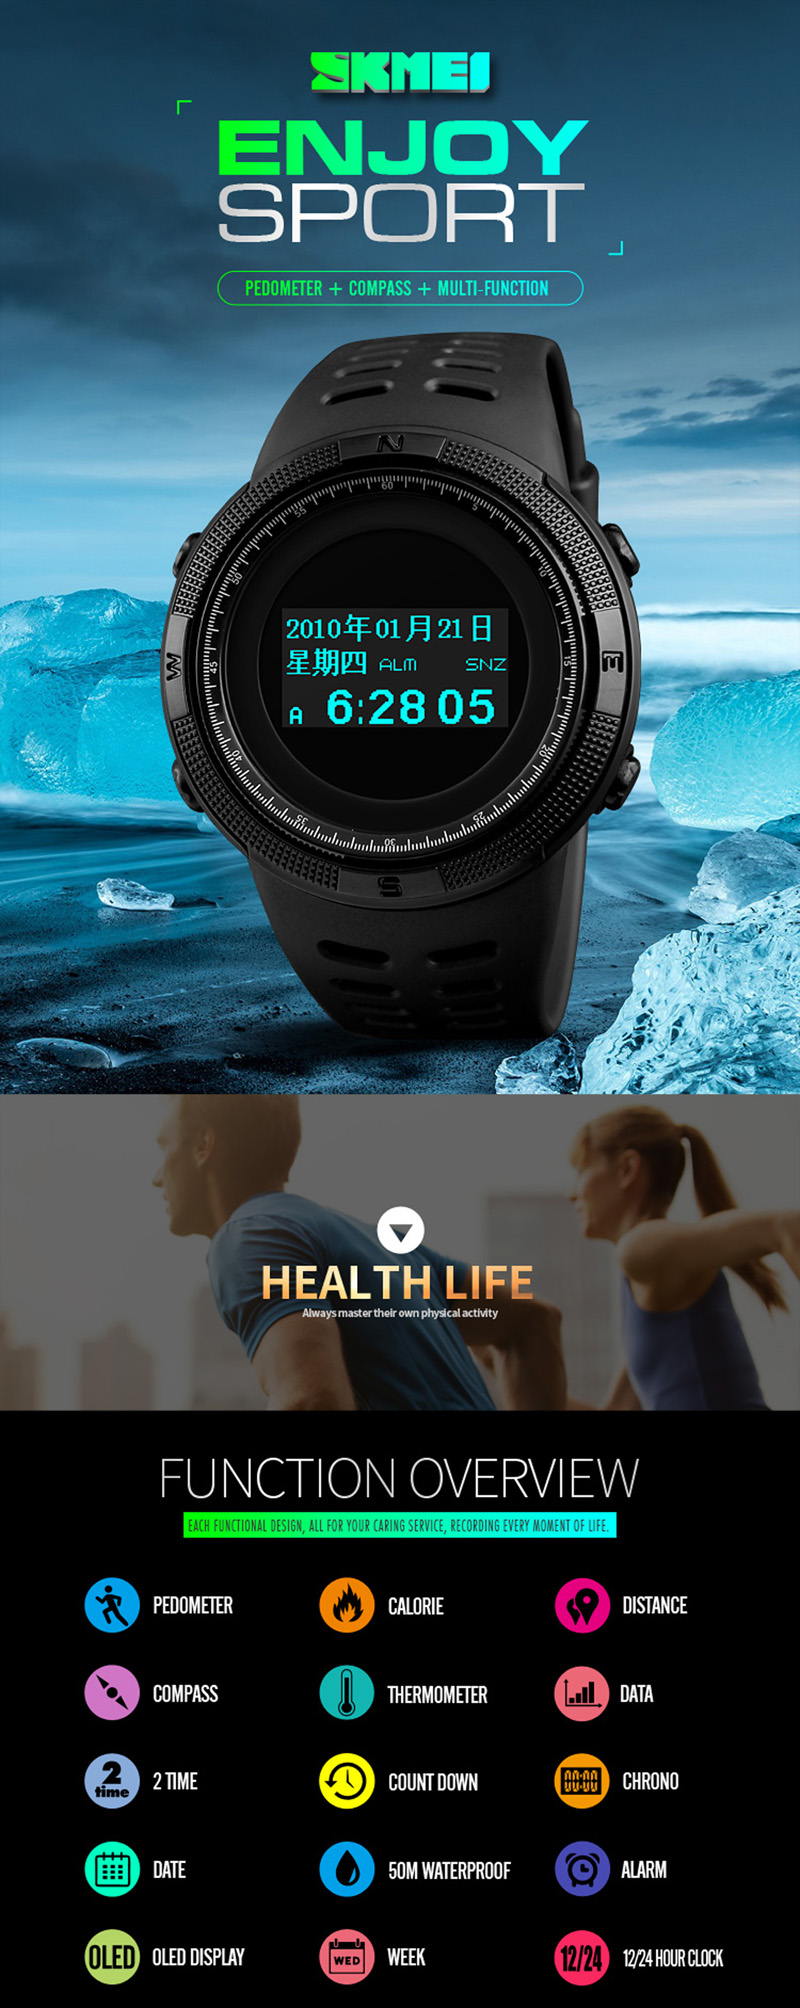 Men's Watches Pedometer Calorie Digital Sport Watch Men Compass Thermometer Wrist Watch Outdoor relojes para hombre SKMEI 2018